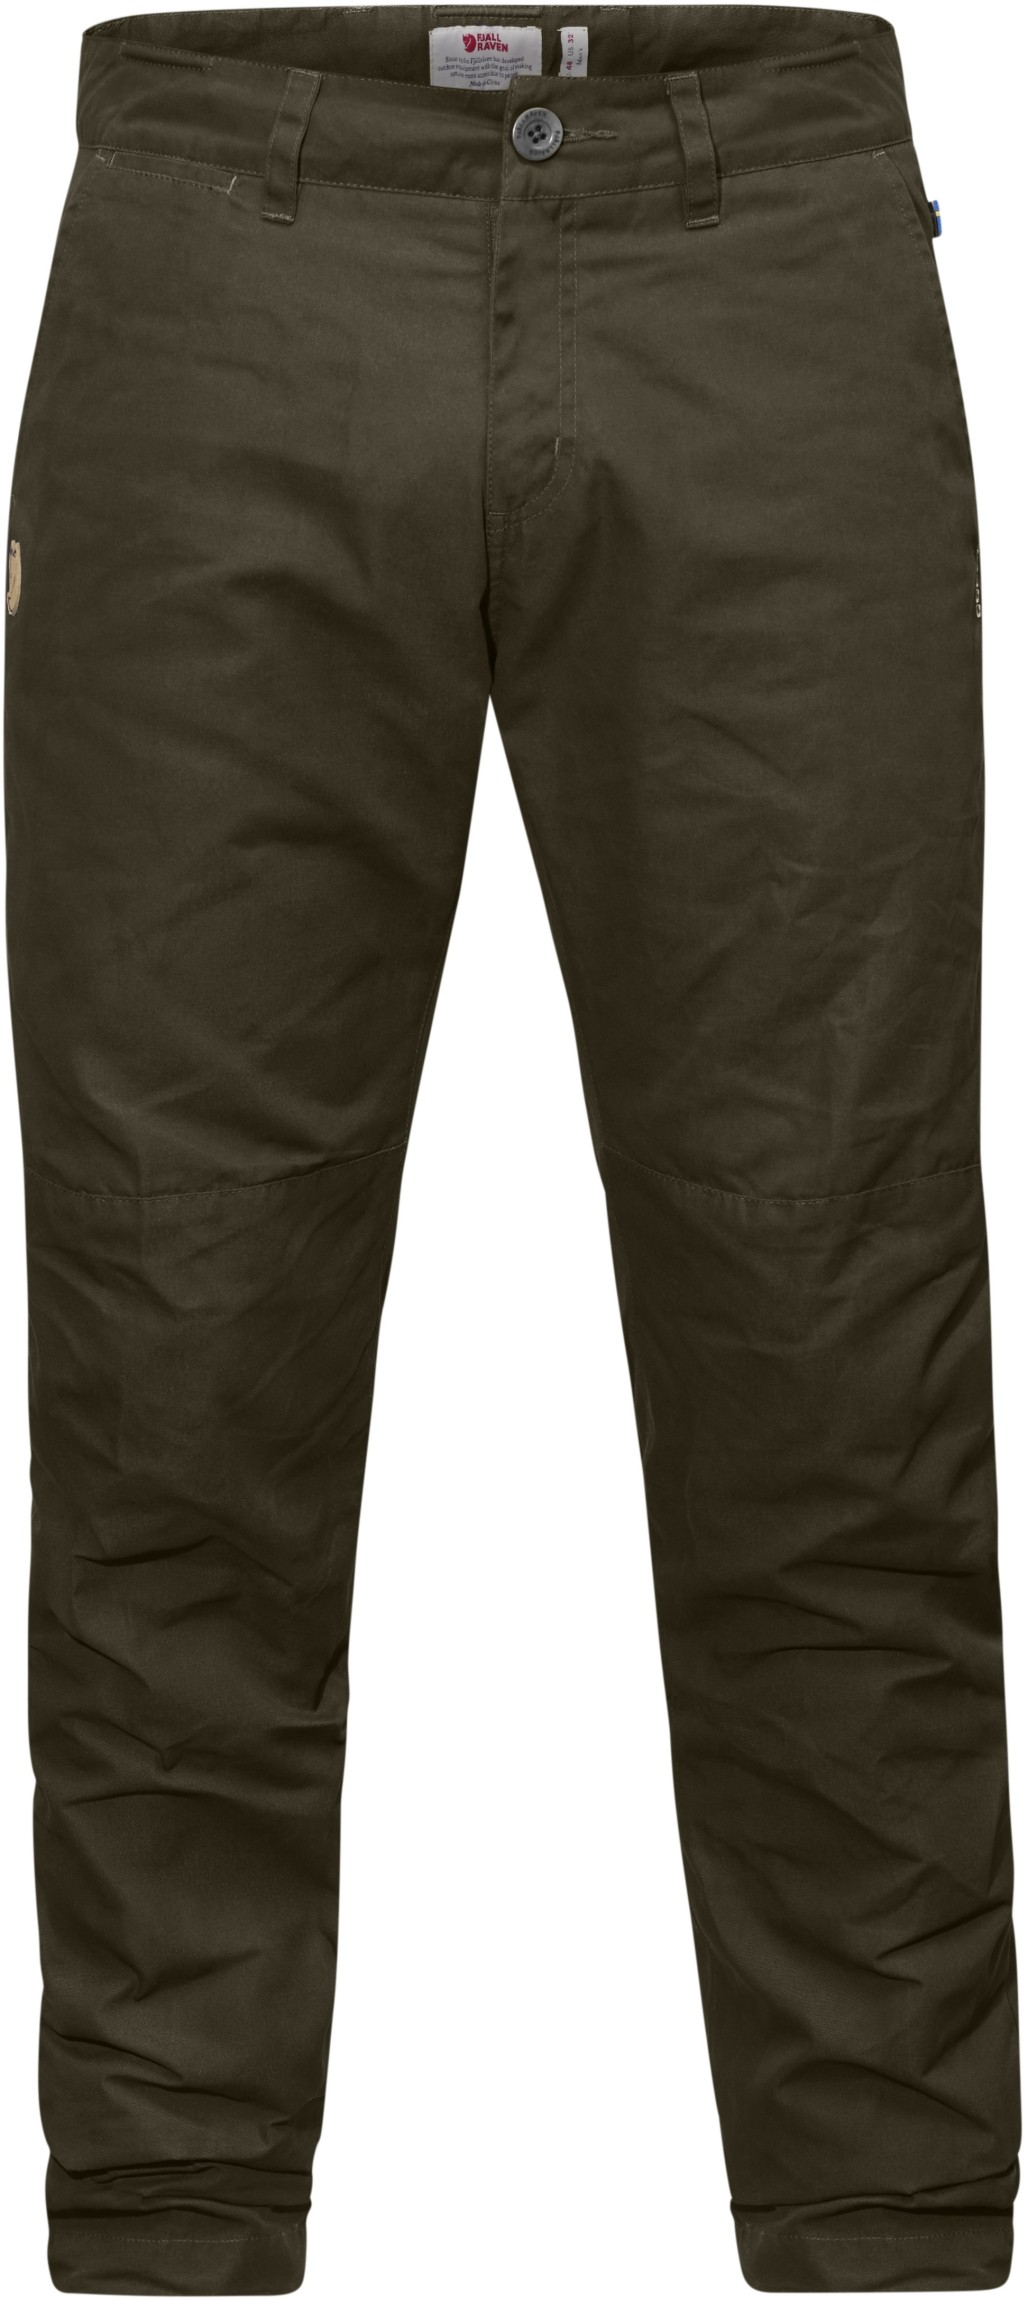 FjallRaven Sormland Tapered Winter Trousers